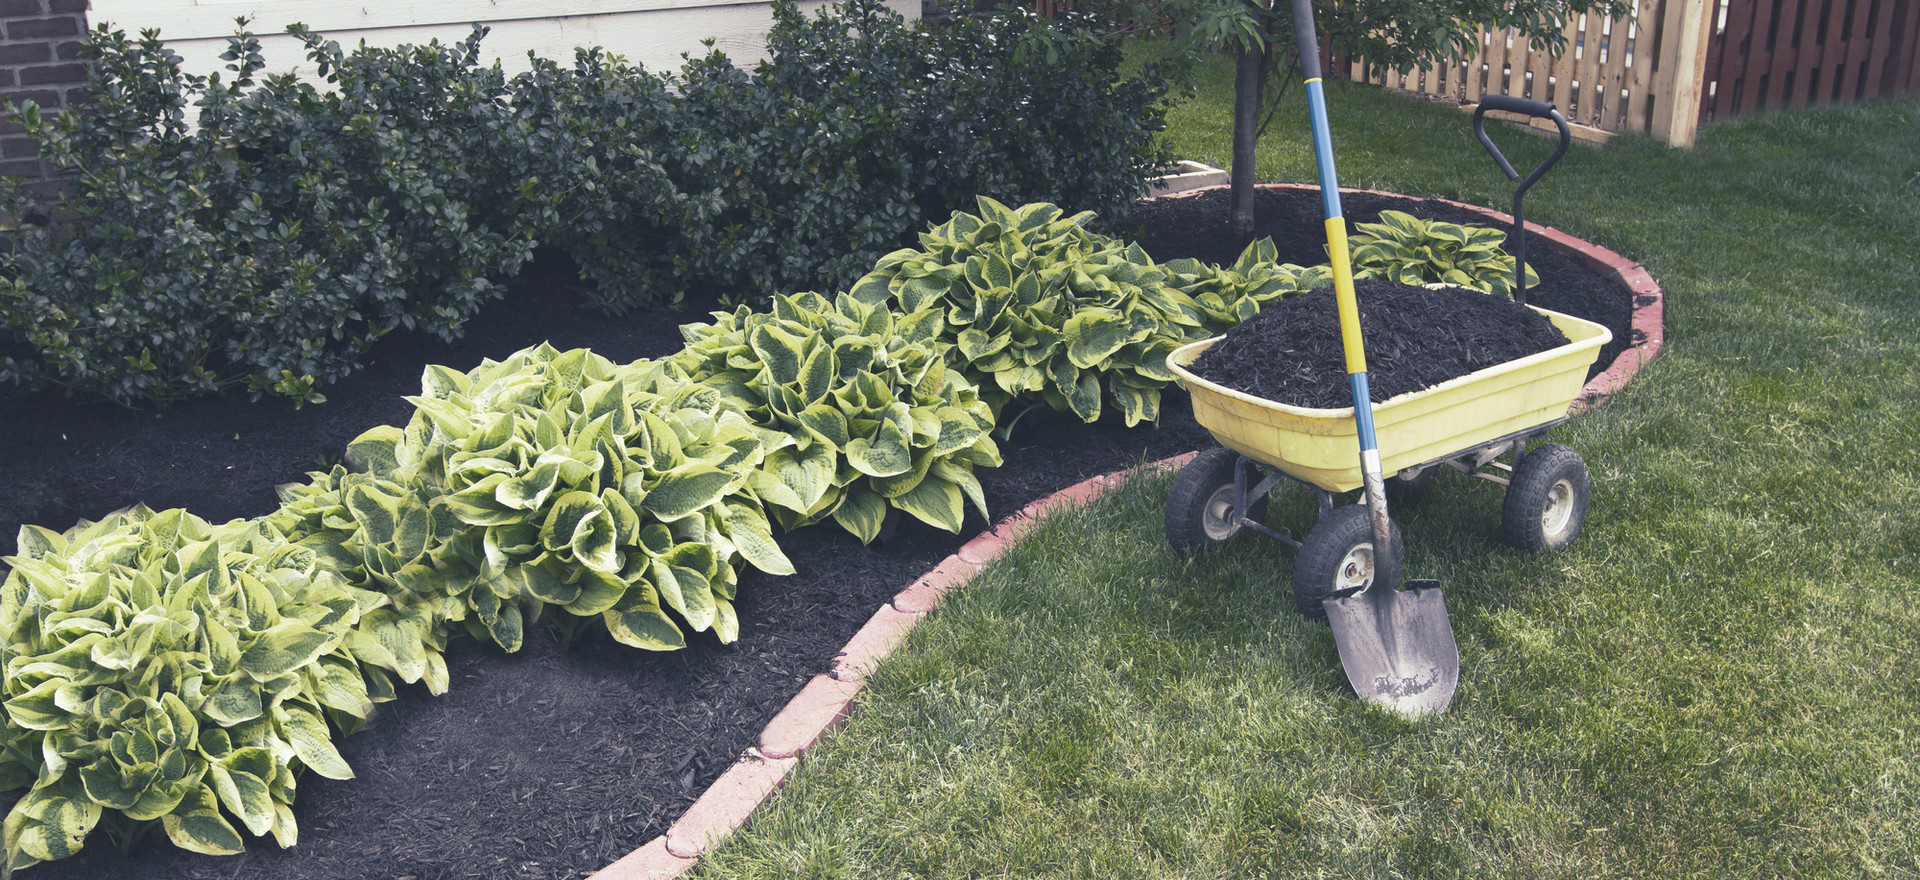 Completed border and mulch with new plants!